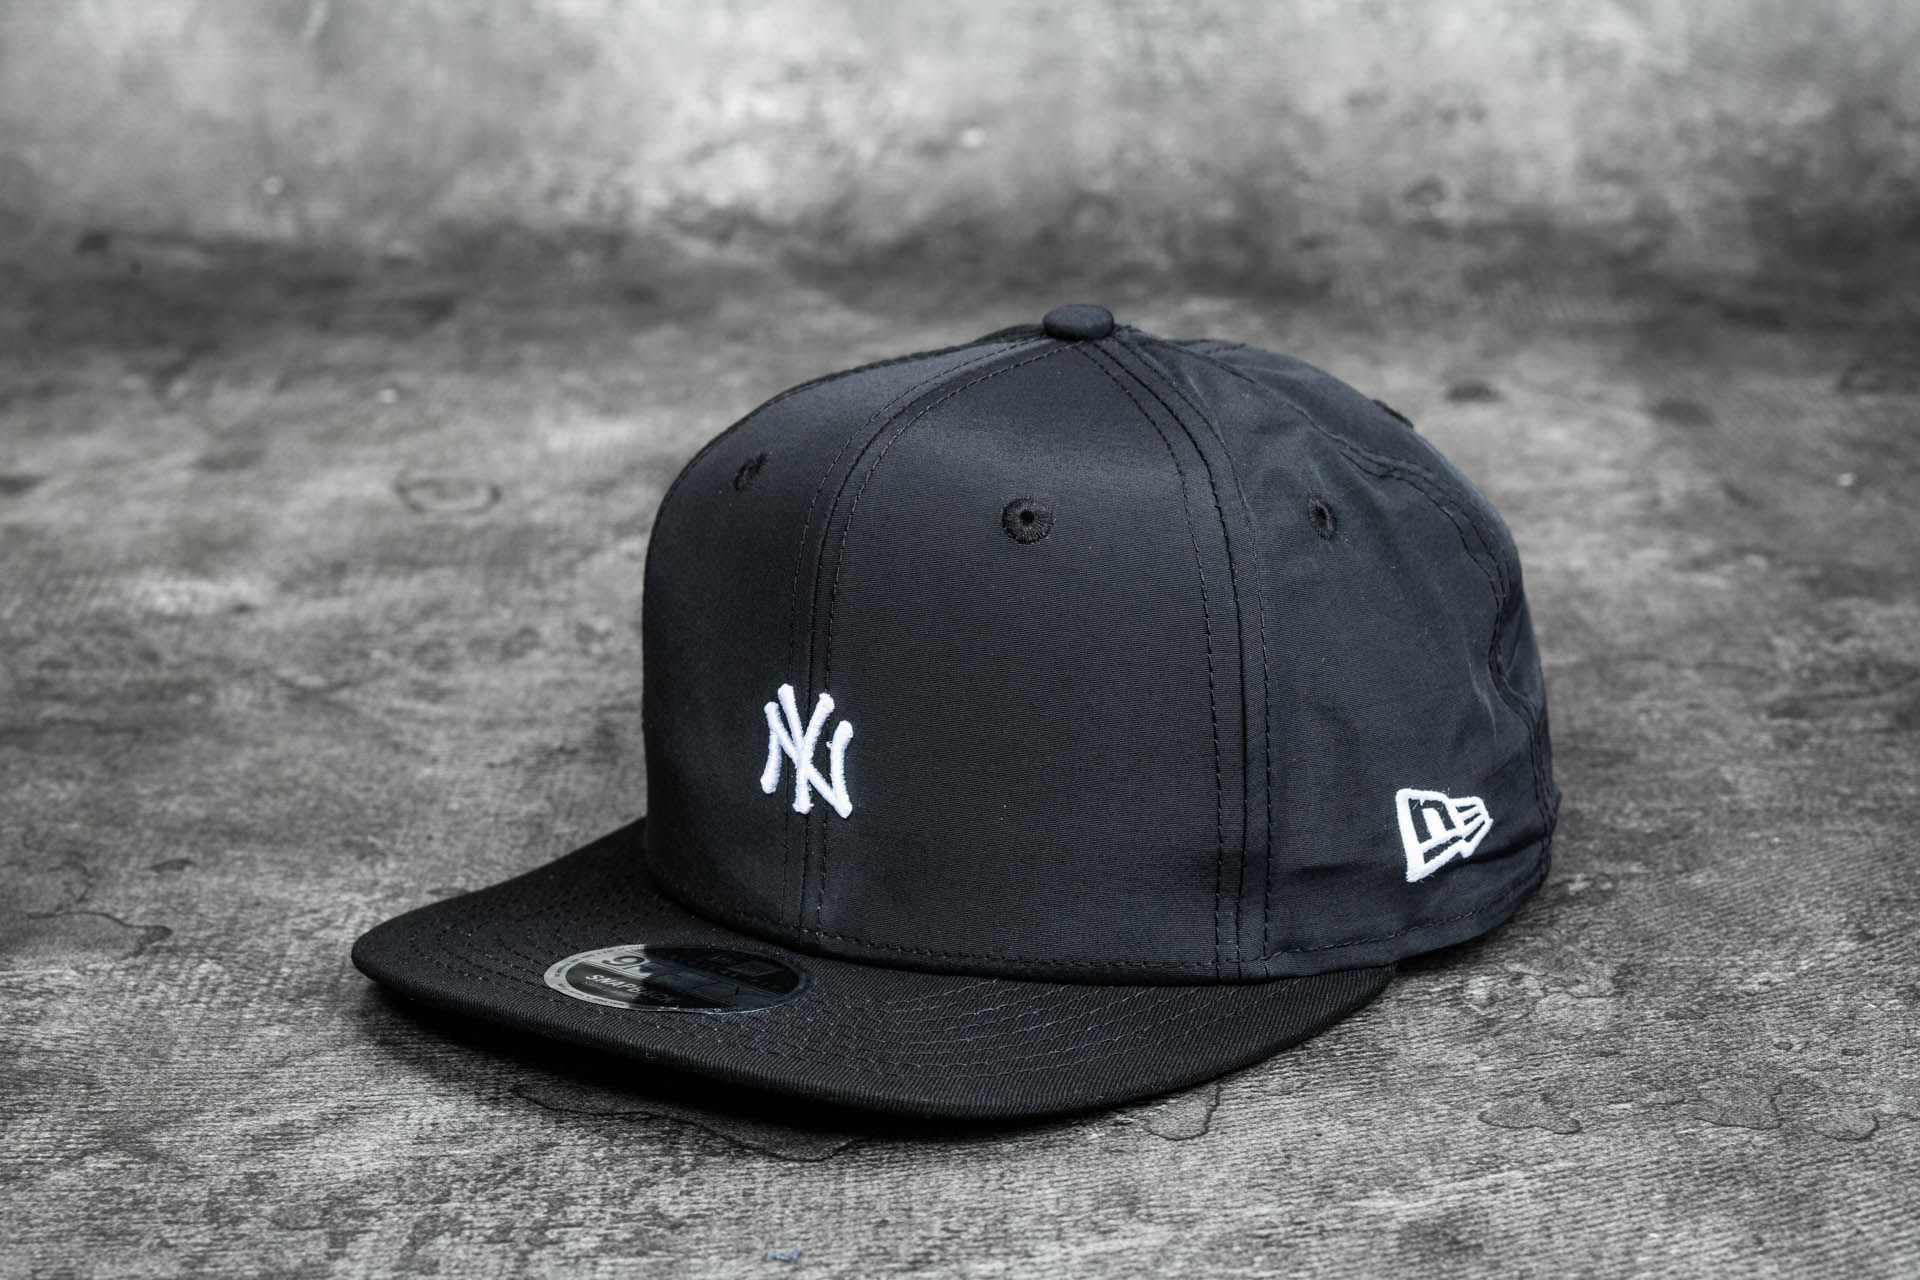 7c11eafda9f New Era 9Fifty Major League Baseball Mini Logo New York Yankees Cap Black